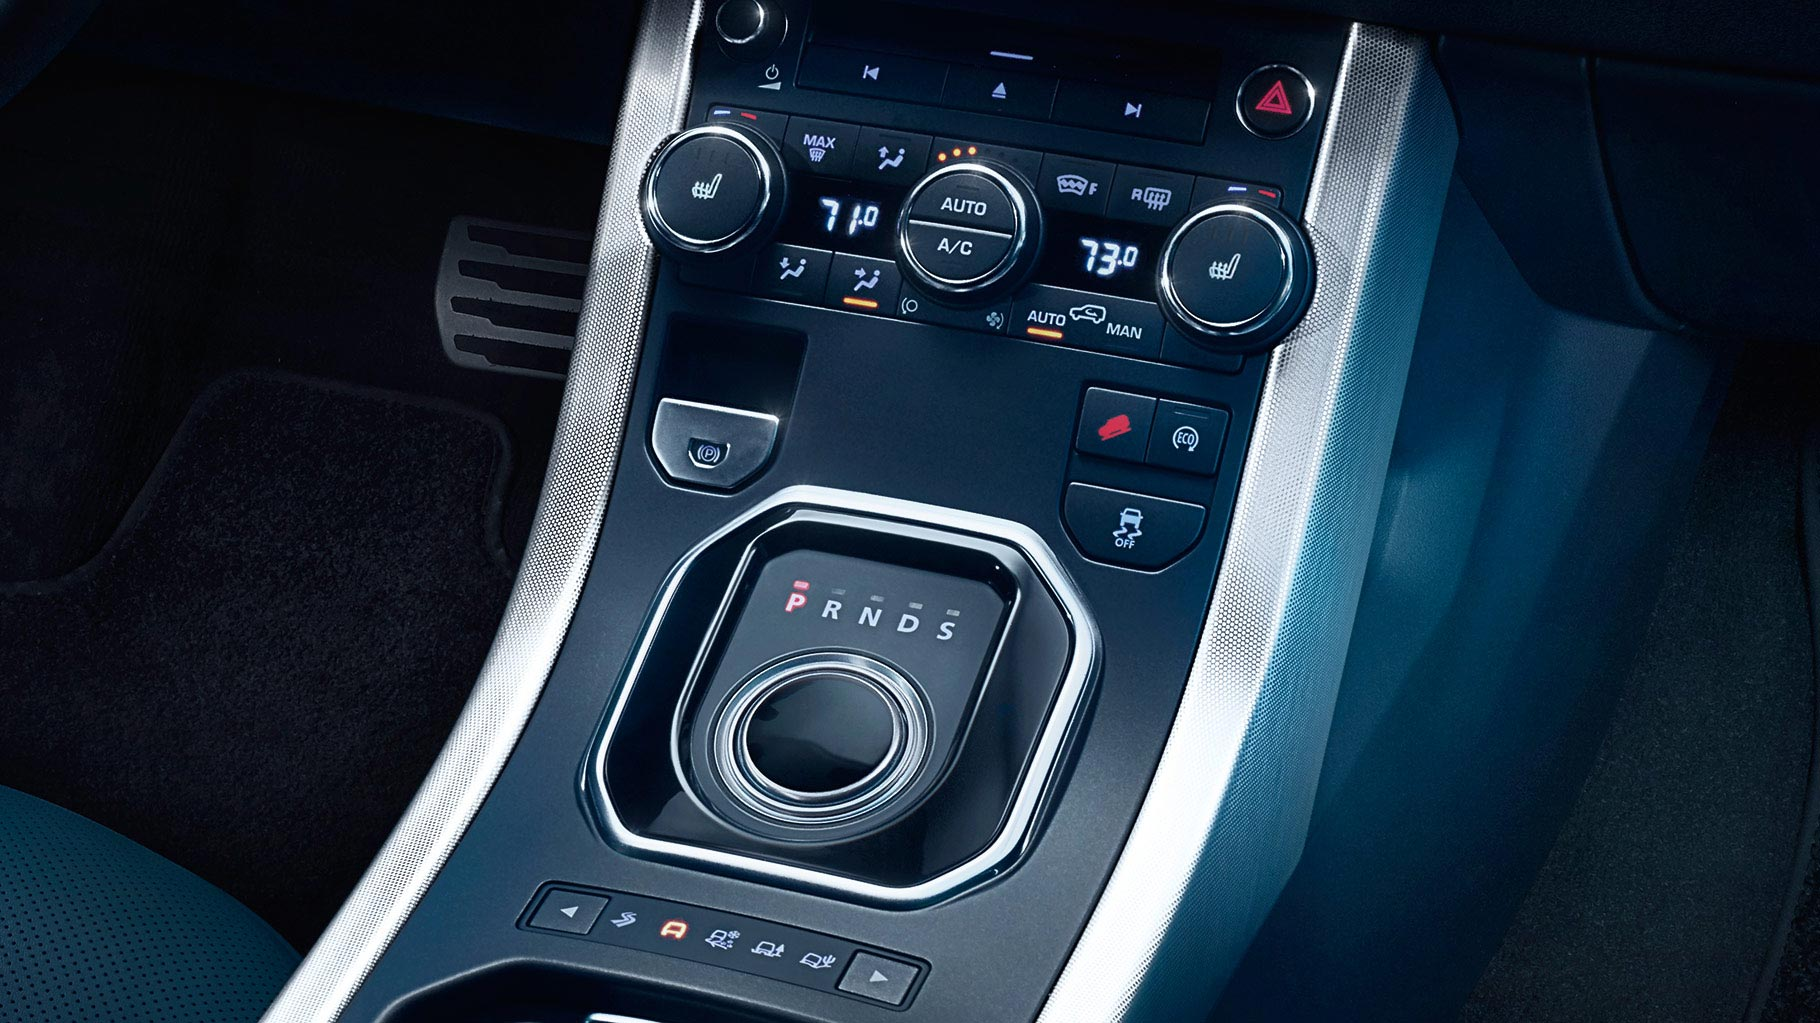 The automatic 9-speed transmission of the Range Rover Evoque